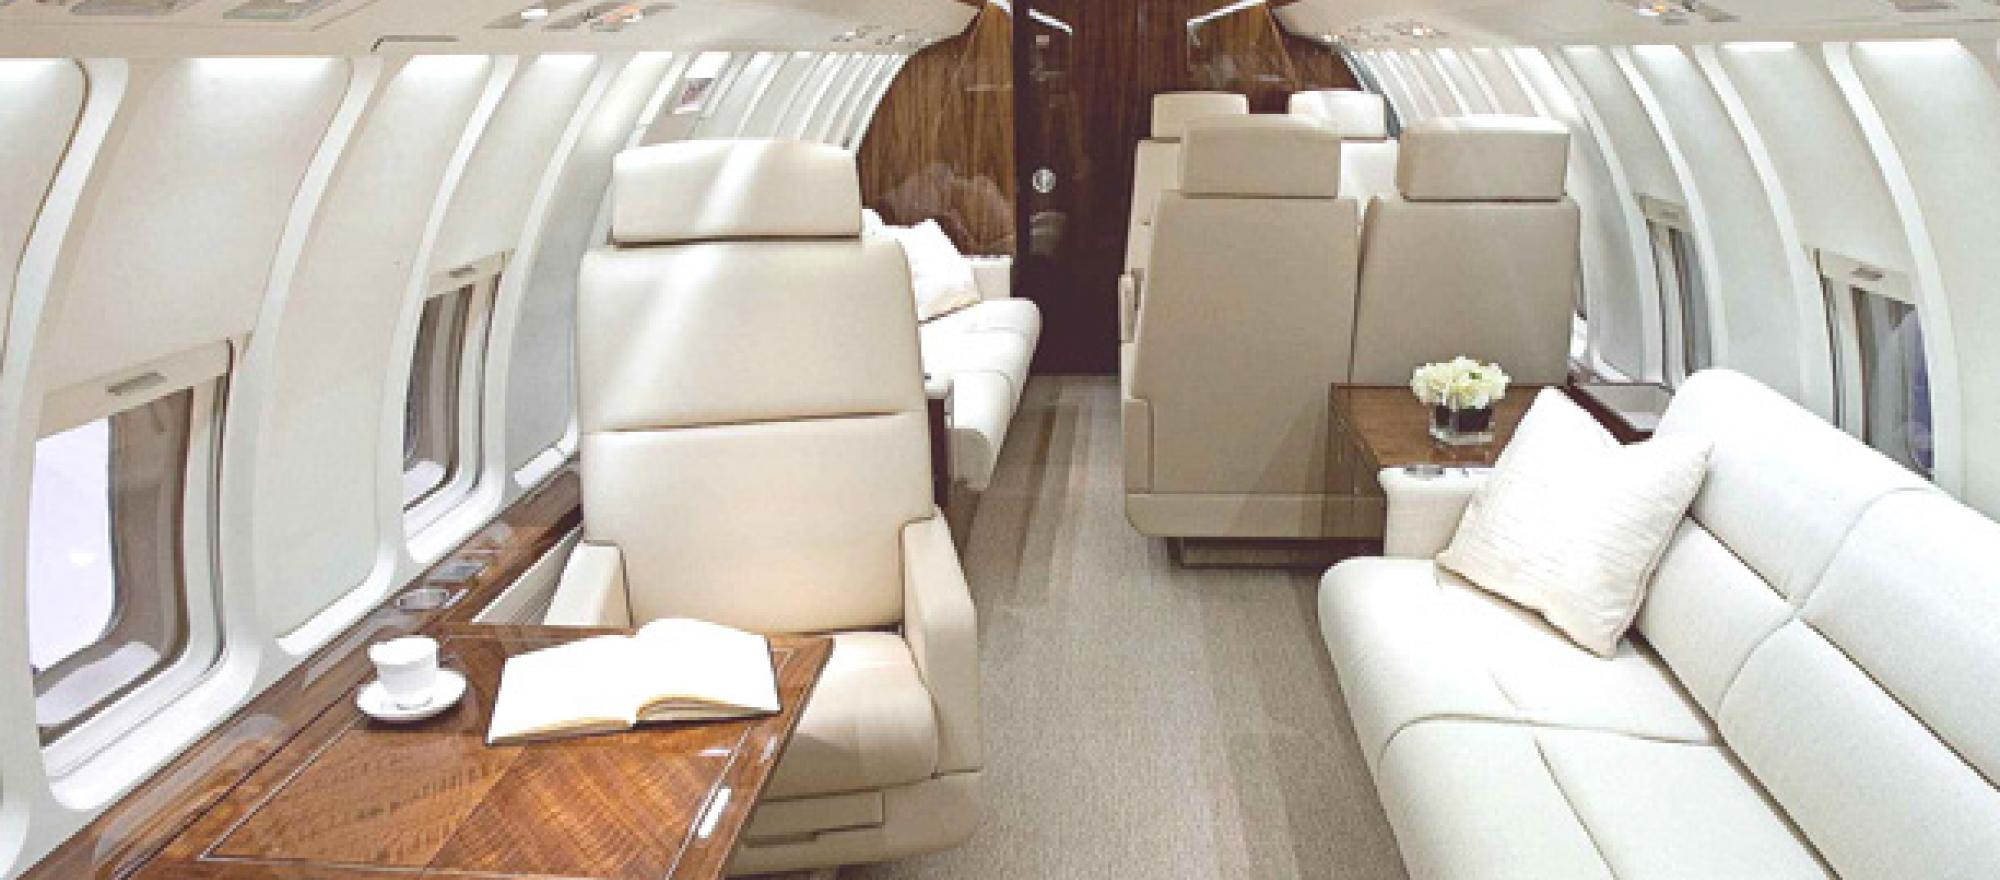 You end up with nearly the equivalent of a new $53.25 million Global Express